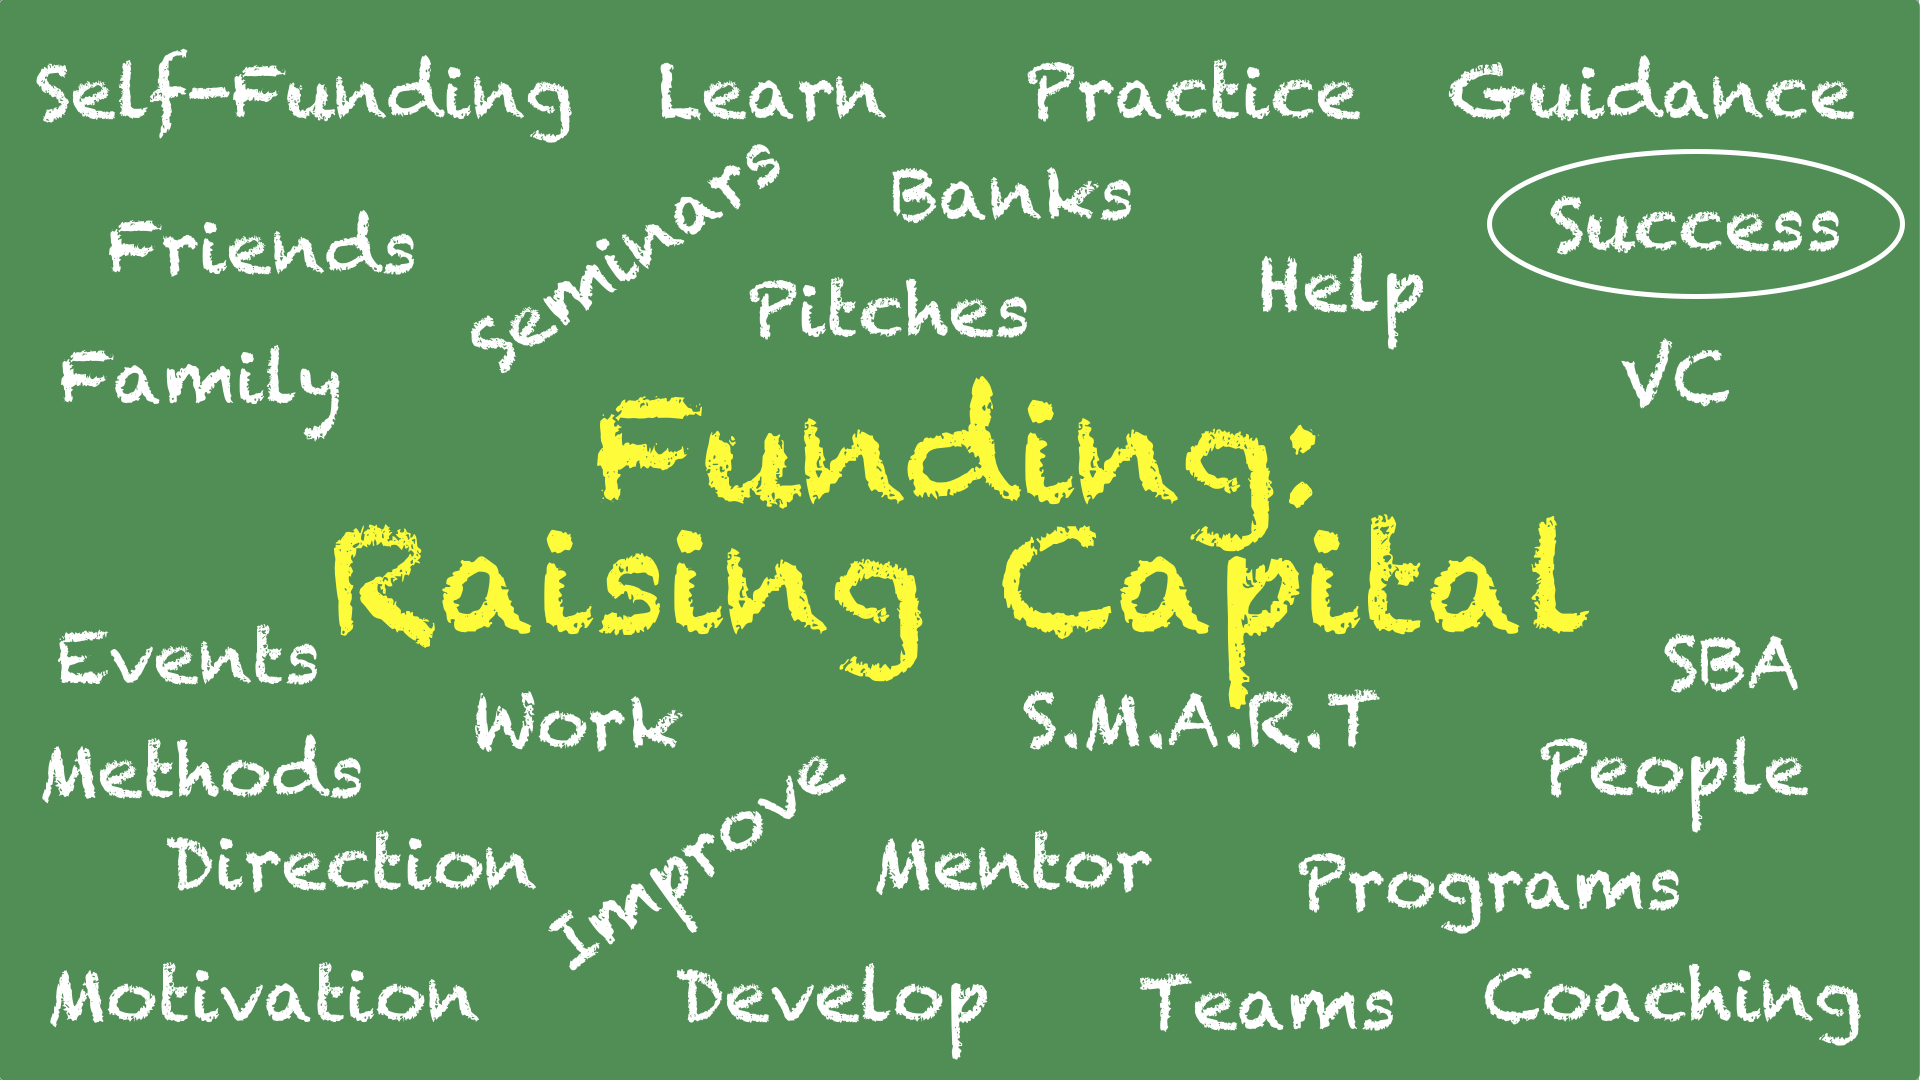 This is the above the fold image for the Funding Page.I is a green blackboard design with the title of Funding: Raising Capital. That title is surrounded by keywords related to fundraising including the words: Banks, VC, Self-Funded, Friends, Family, Mentor, Team and many more